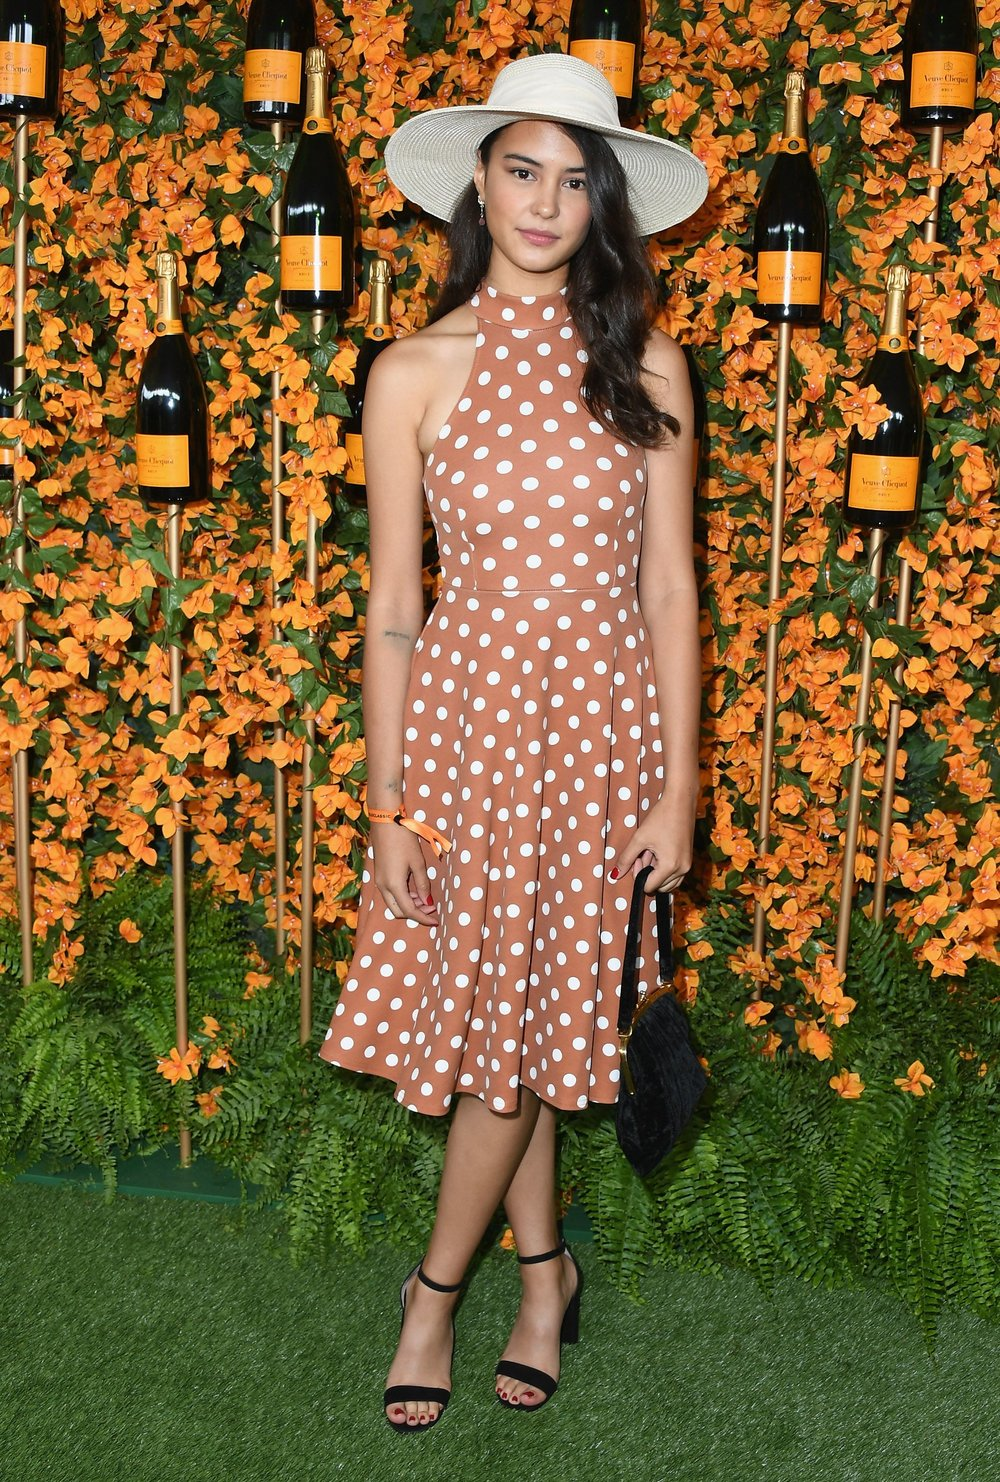 courtney-eaton-attends-the-9th-annual-veuve-clicquot-polo-news-photo-1046761080-1538937283.jpg